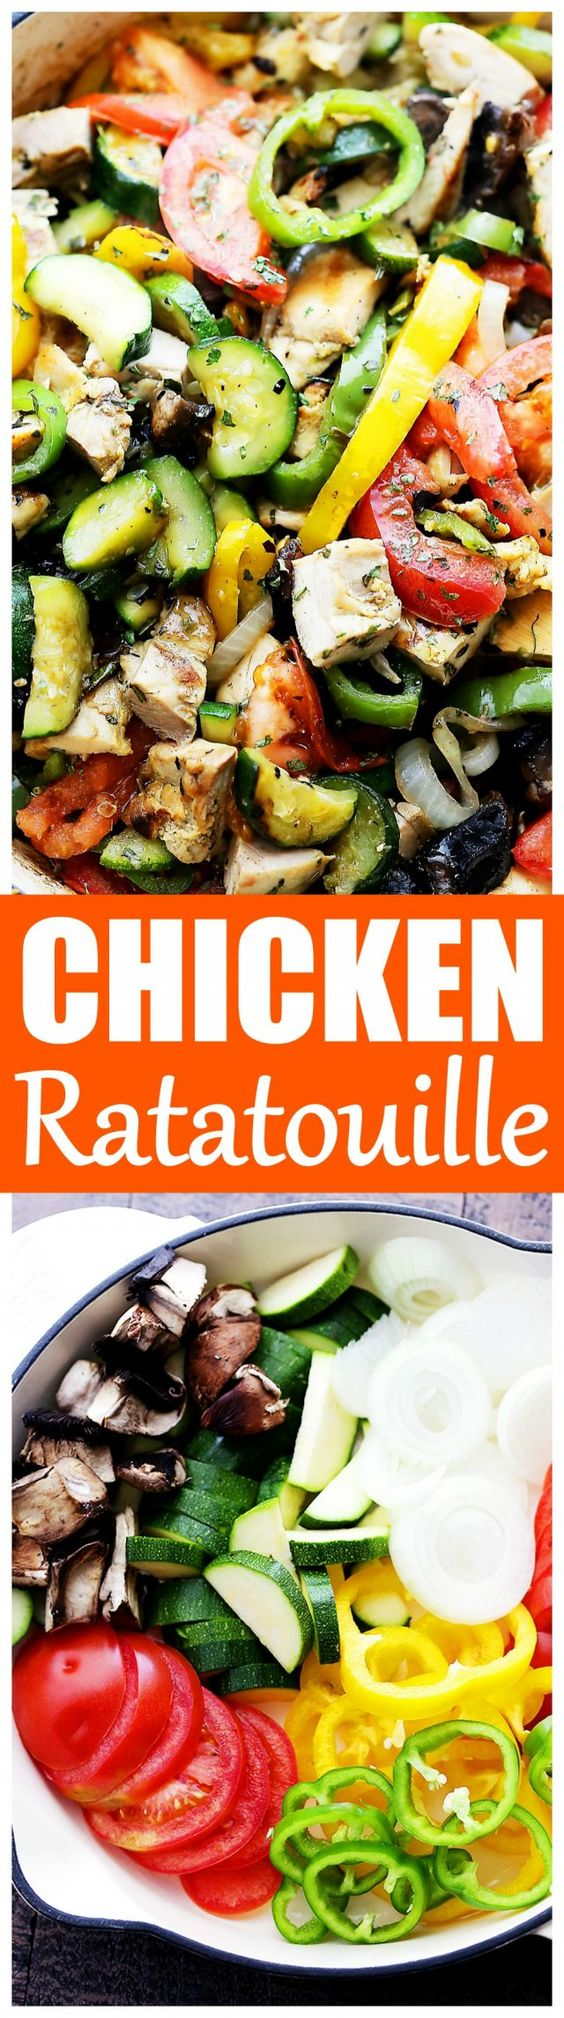 Ratatouille recipe, Ratatouille and Delicious meals on Pinterest